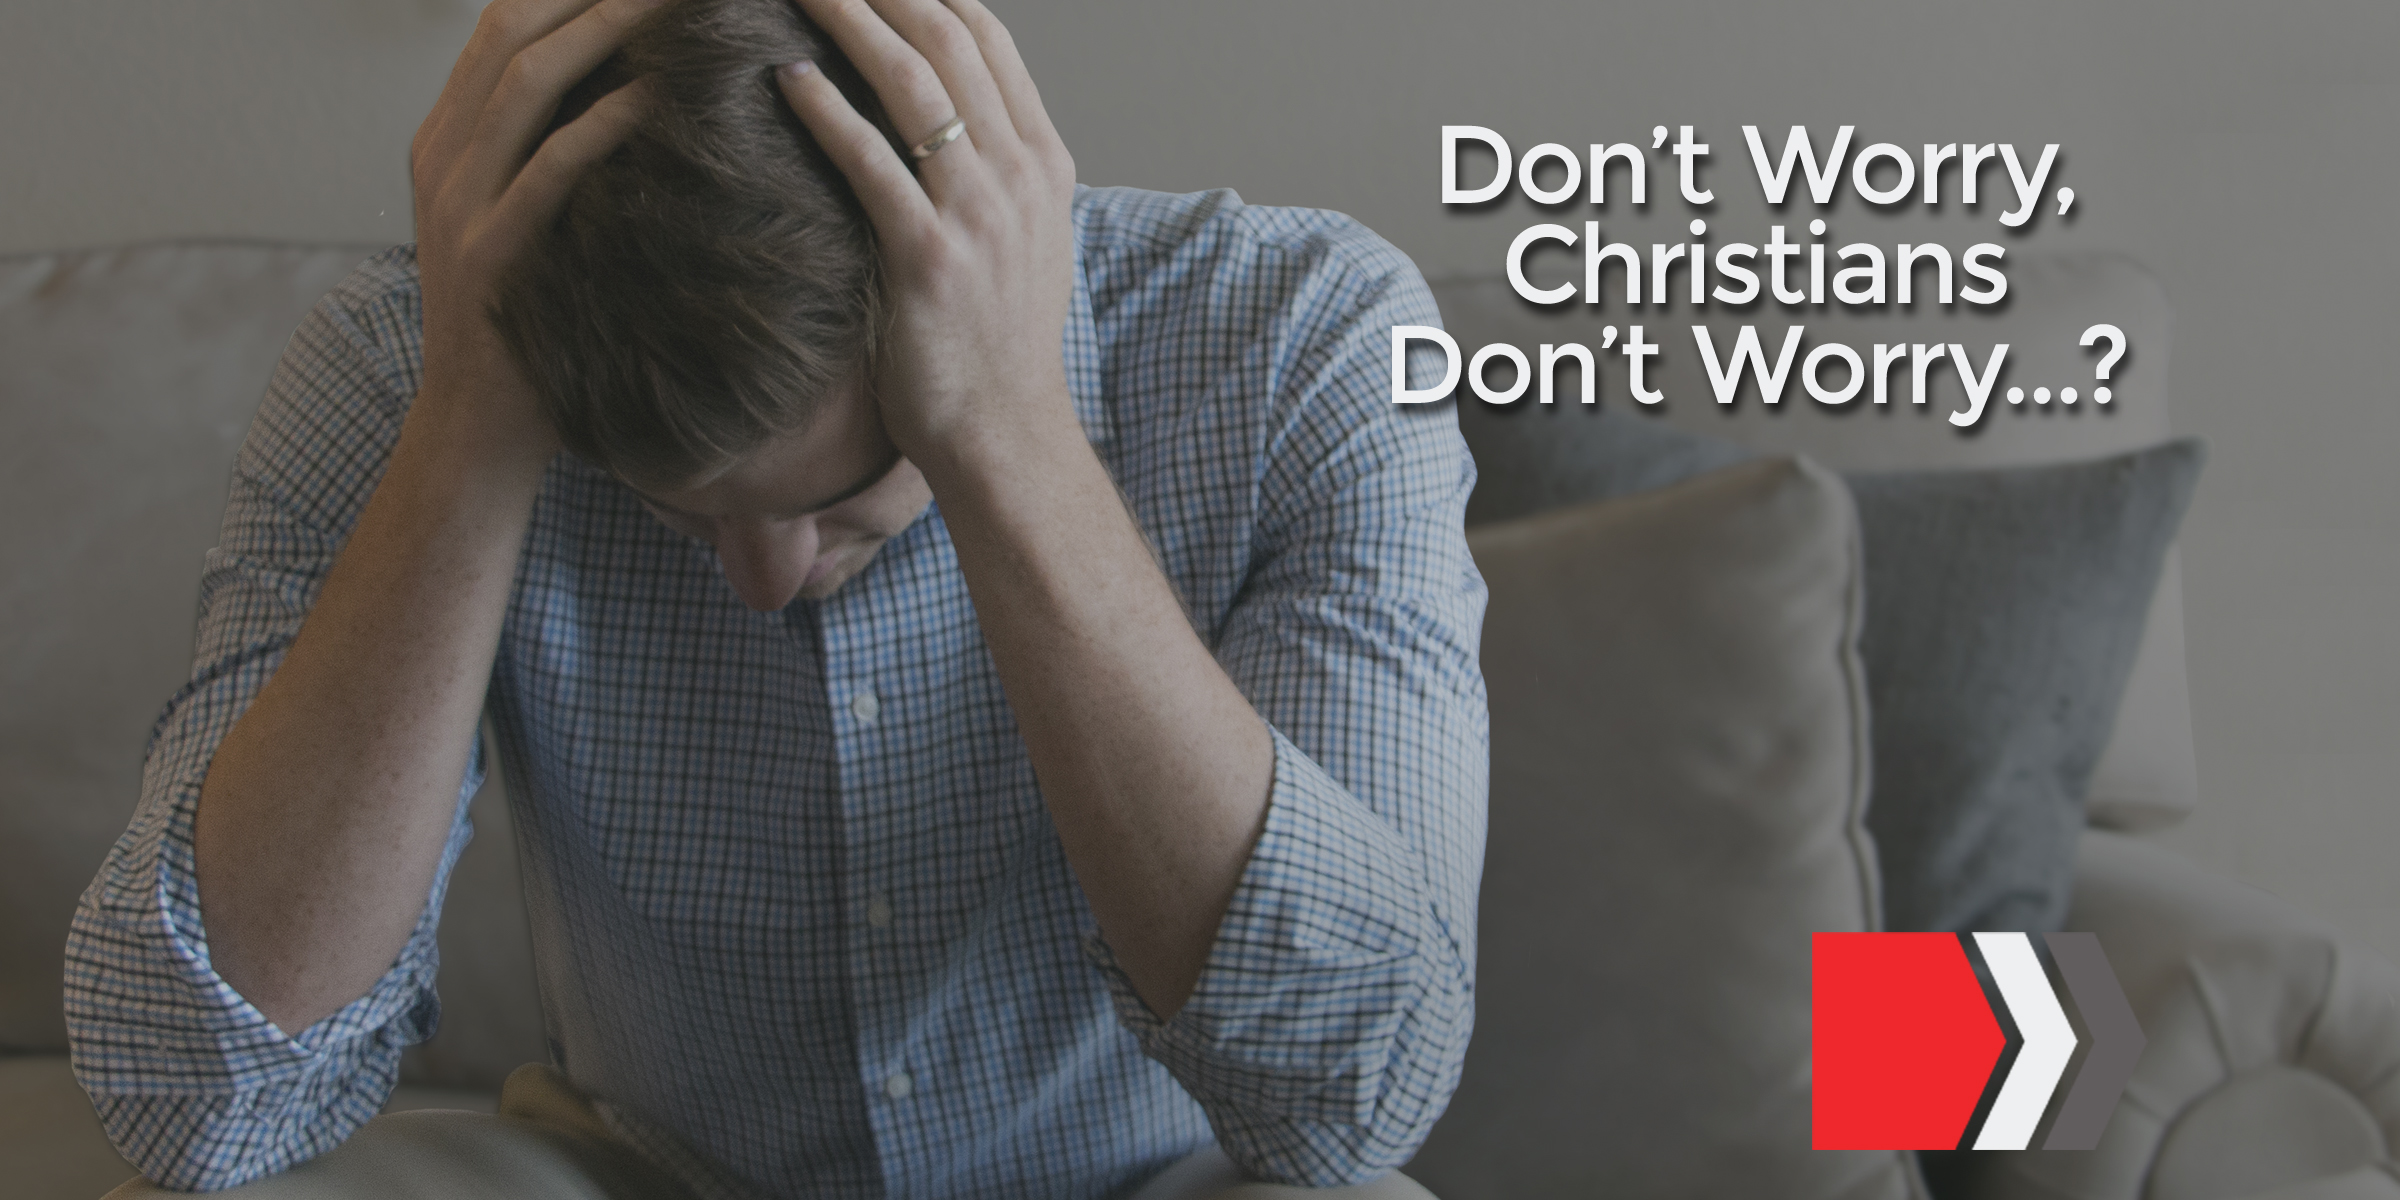 Don't Worry, Christians Don't Worry?